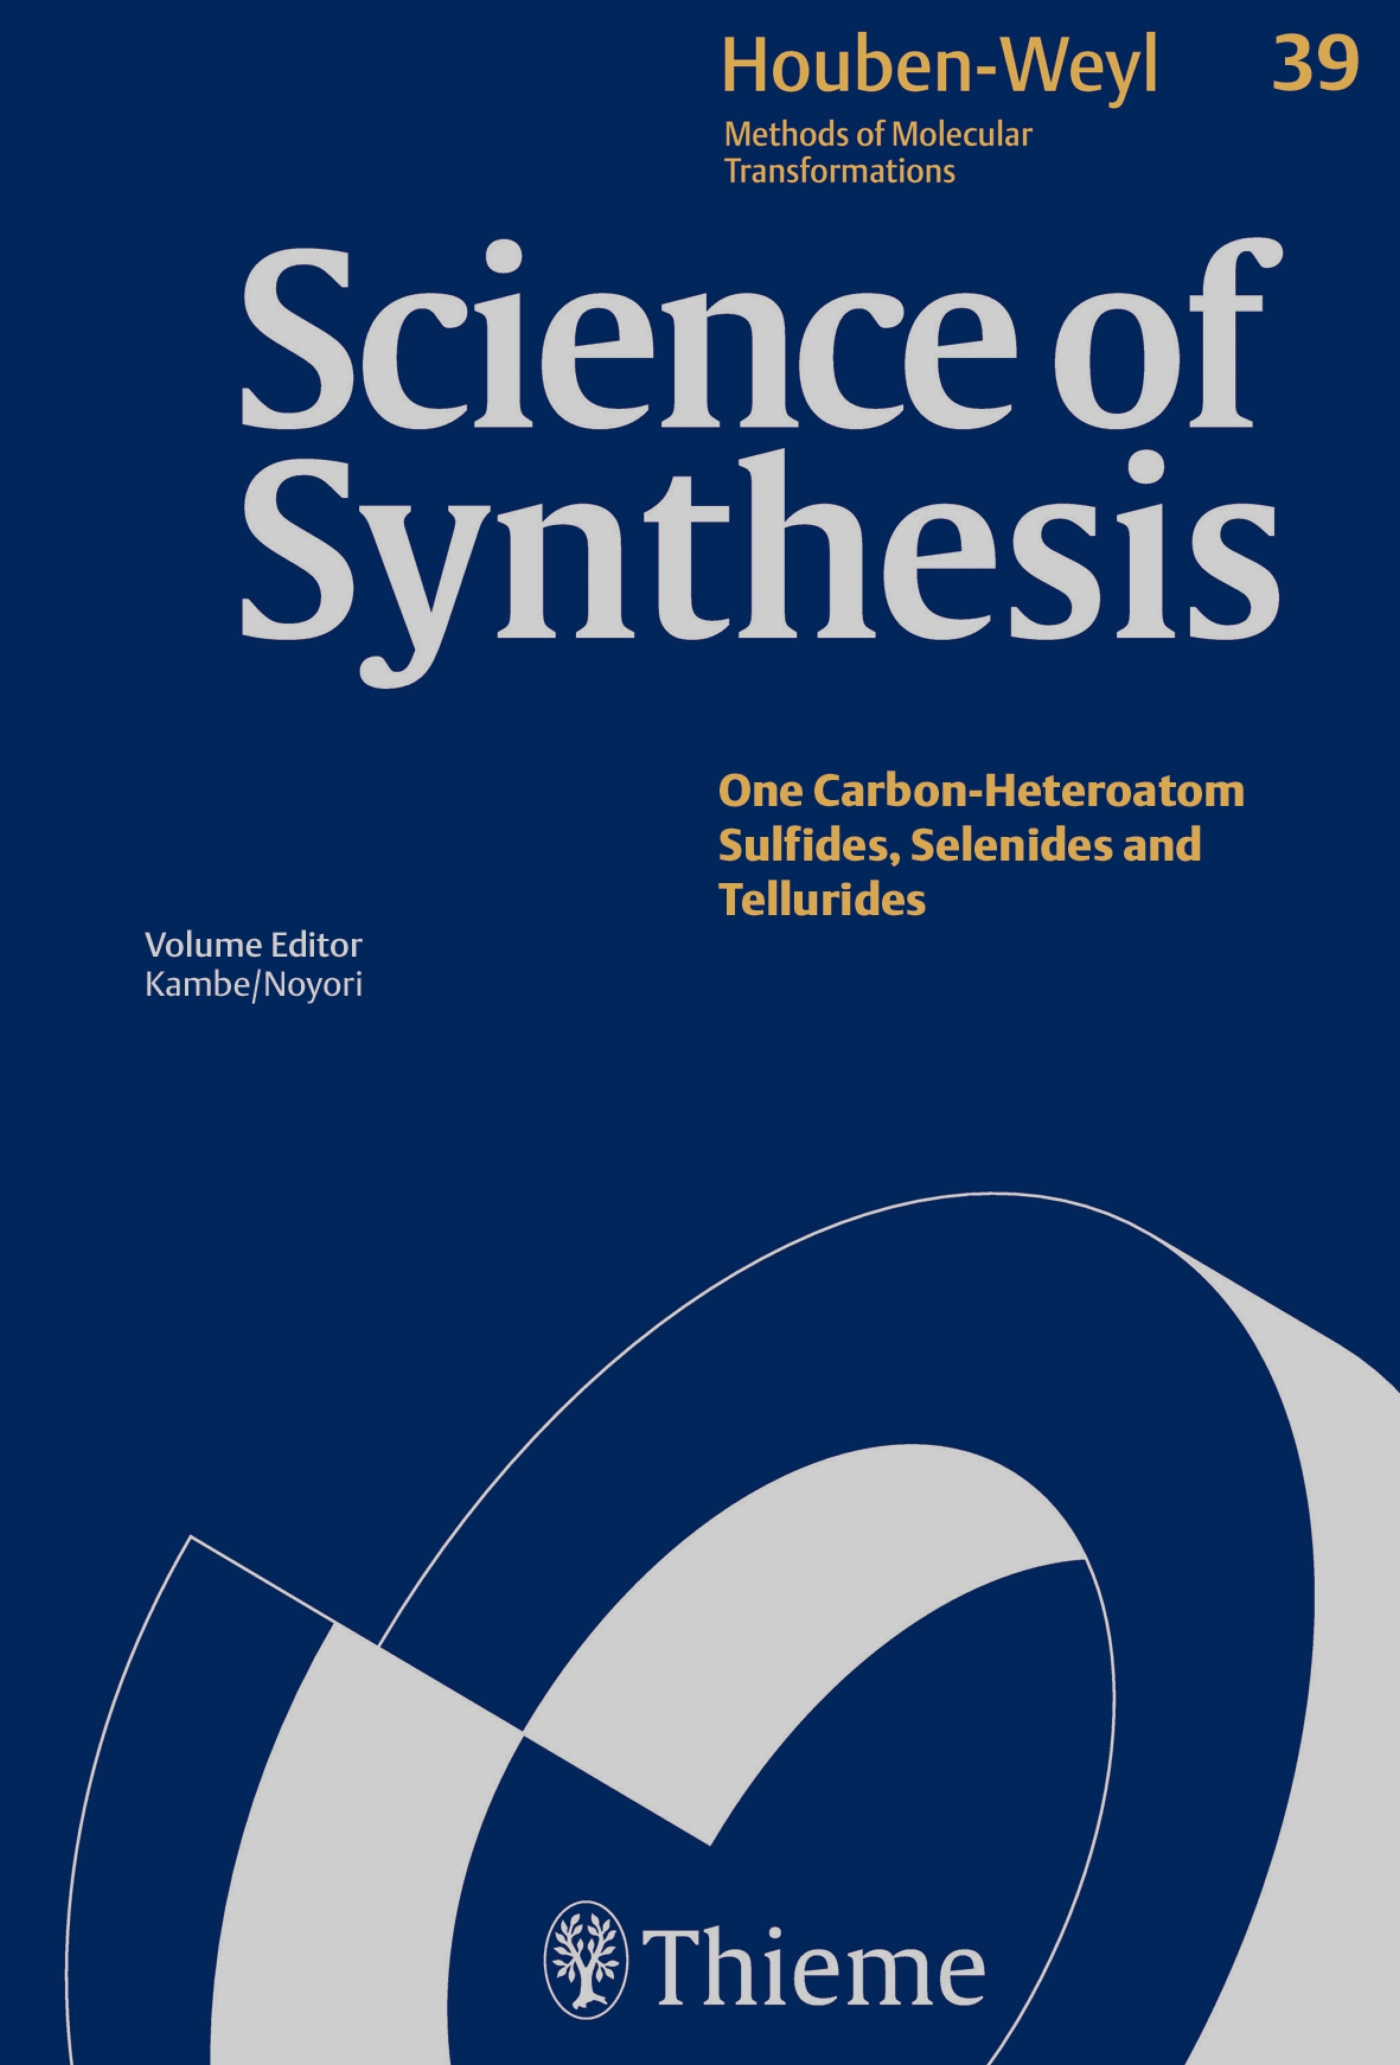 Science of Synthesis: Houben-Weyl Methods of Molecular Transformations  Vol. 39